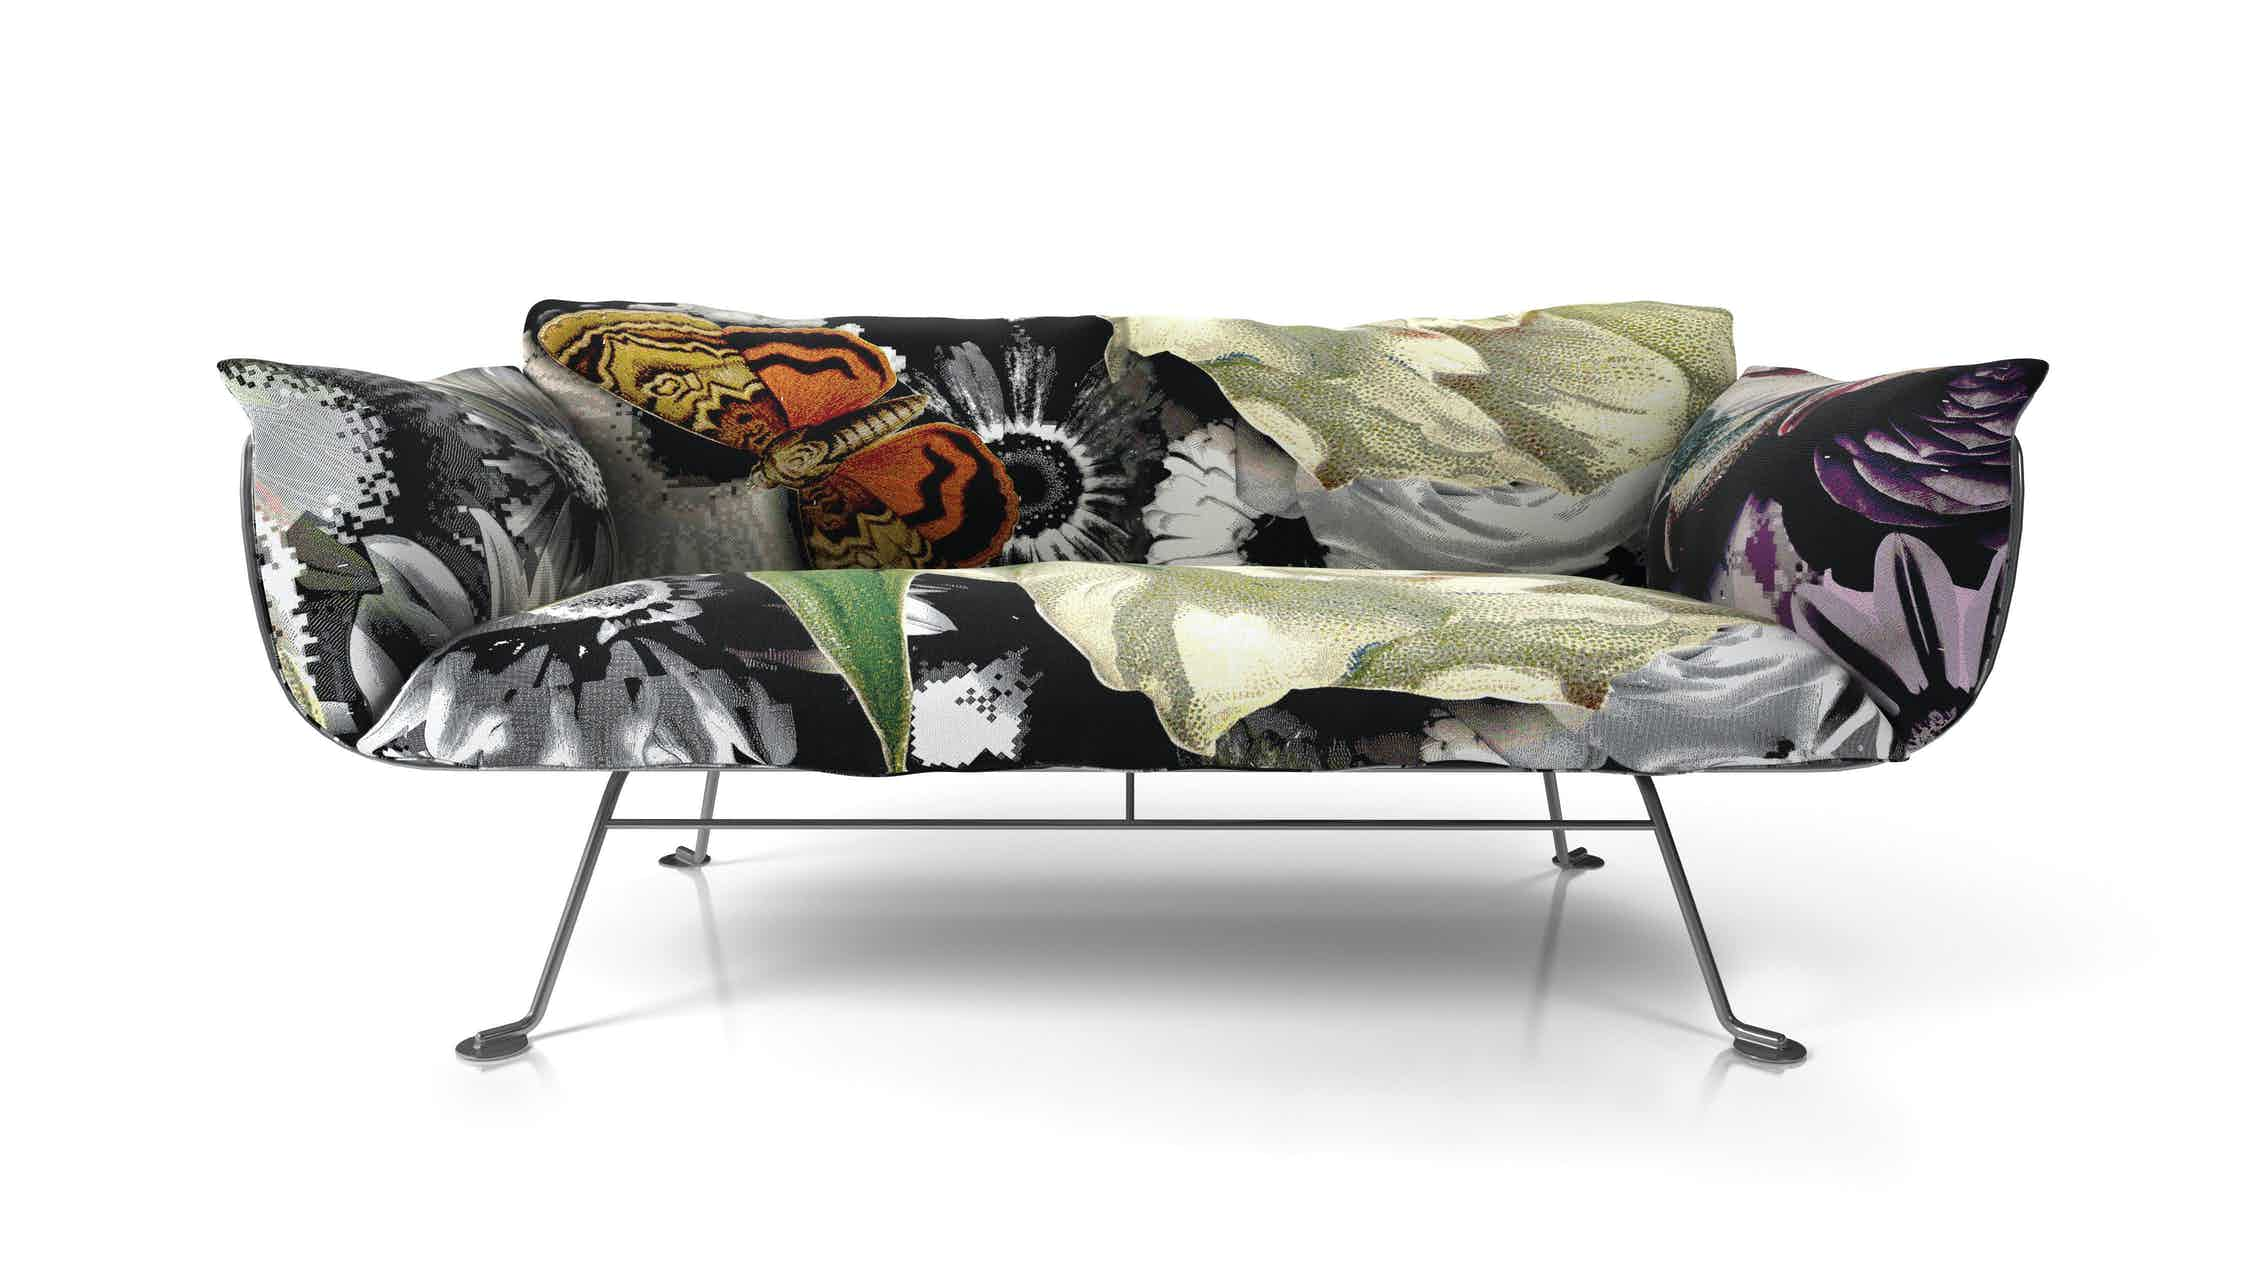 Nest Sofa Flower Bits By Marcel Wanders For Moooi Moooi 300Dpi Moooi